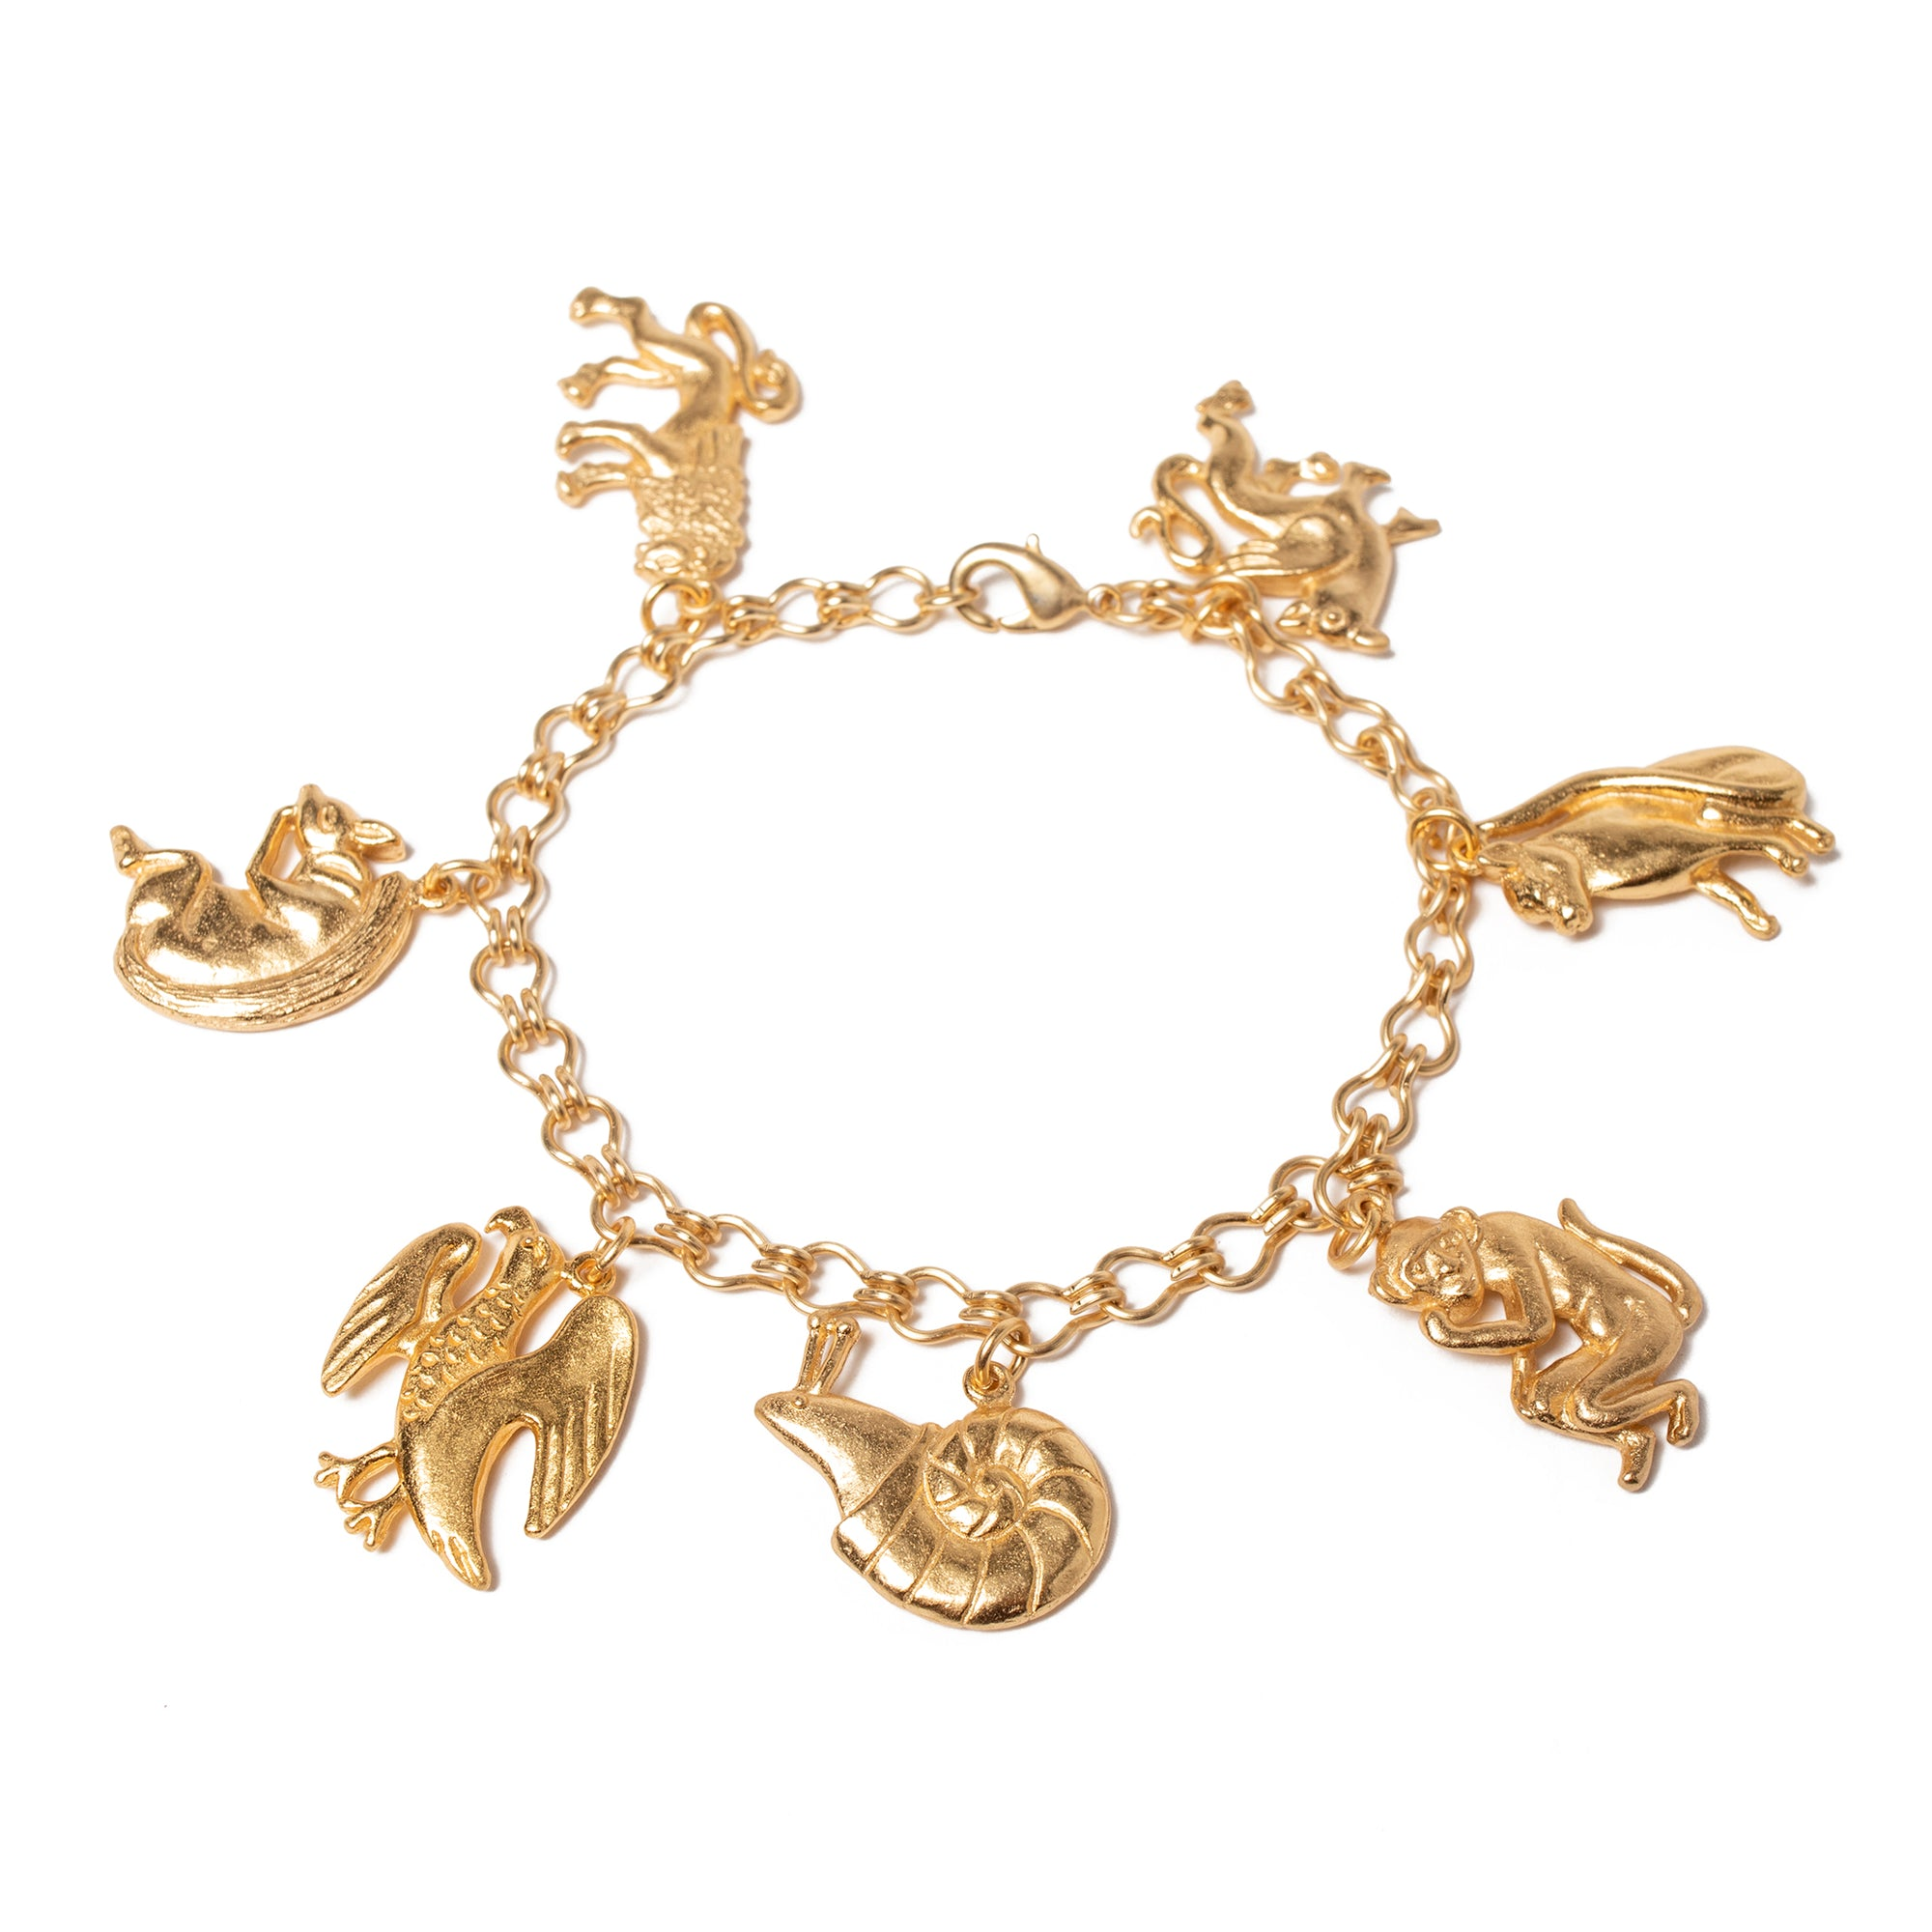 Book of Beasts Charm Bracelet